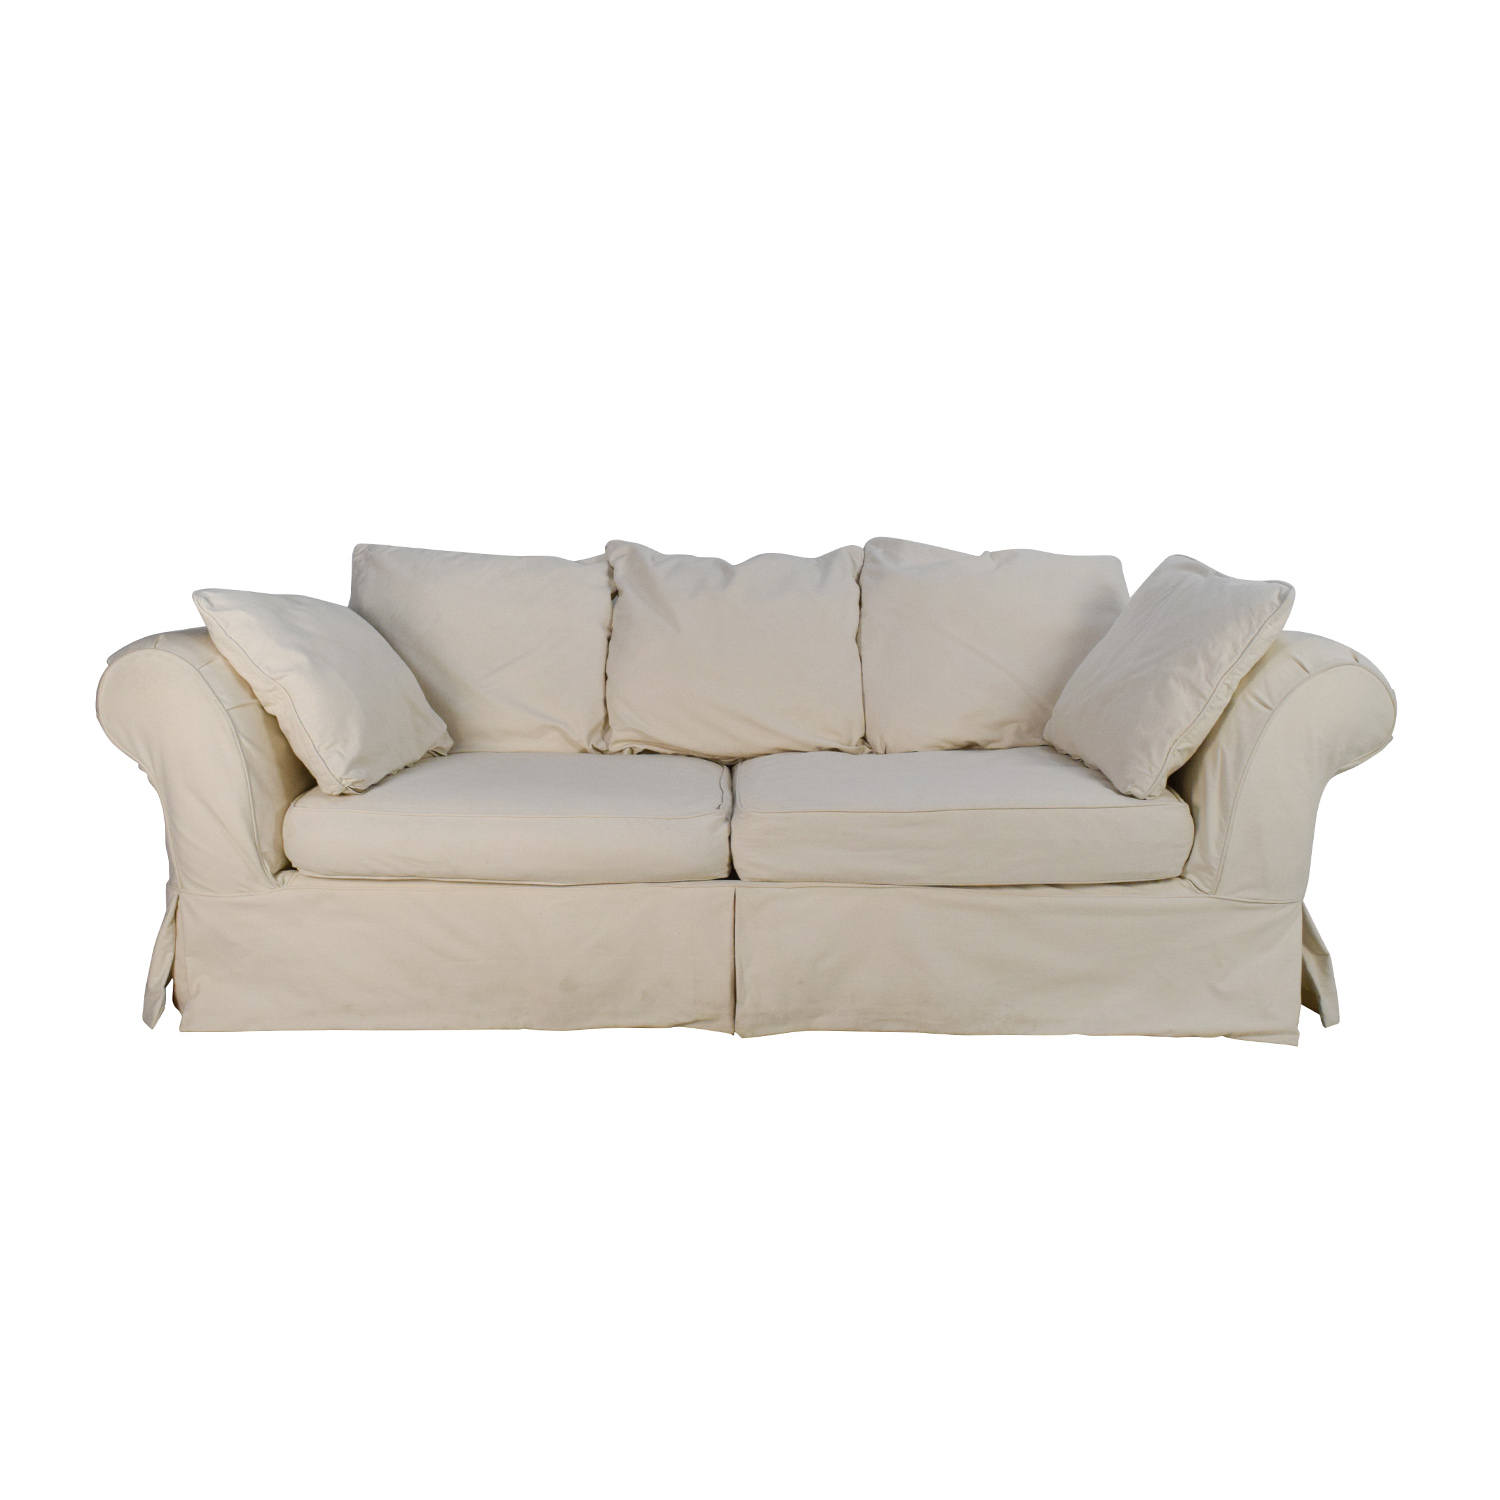 Jennifer convertibles linda sofa bed sofa the honoroak for Sectional sofa jennifer convertible